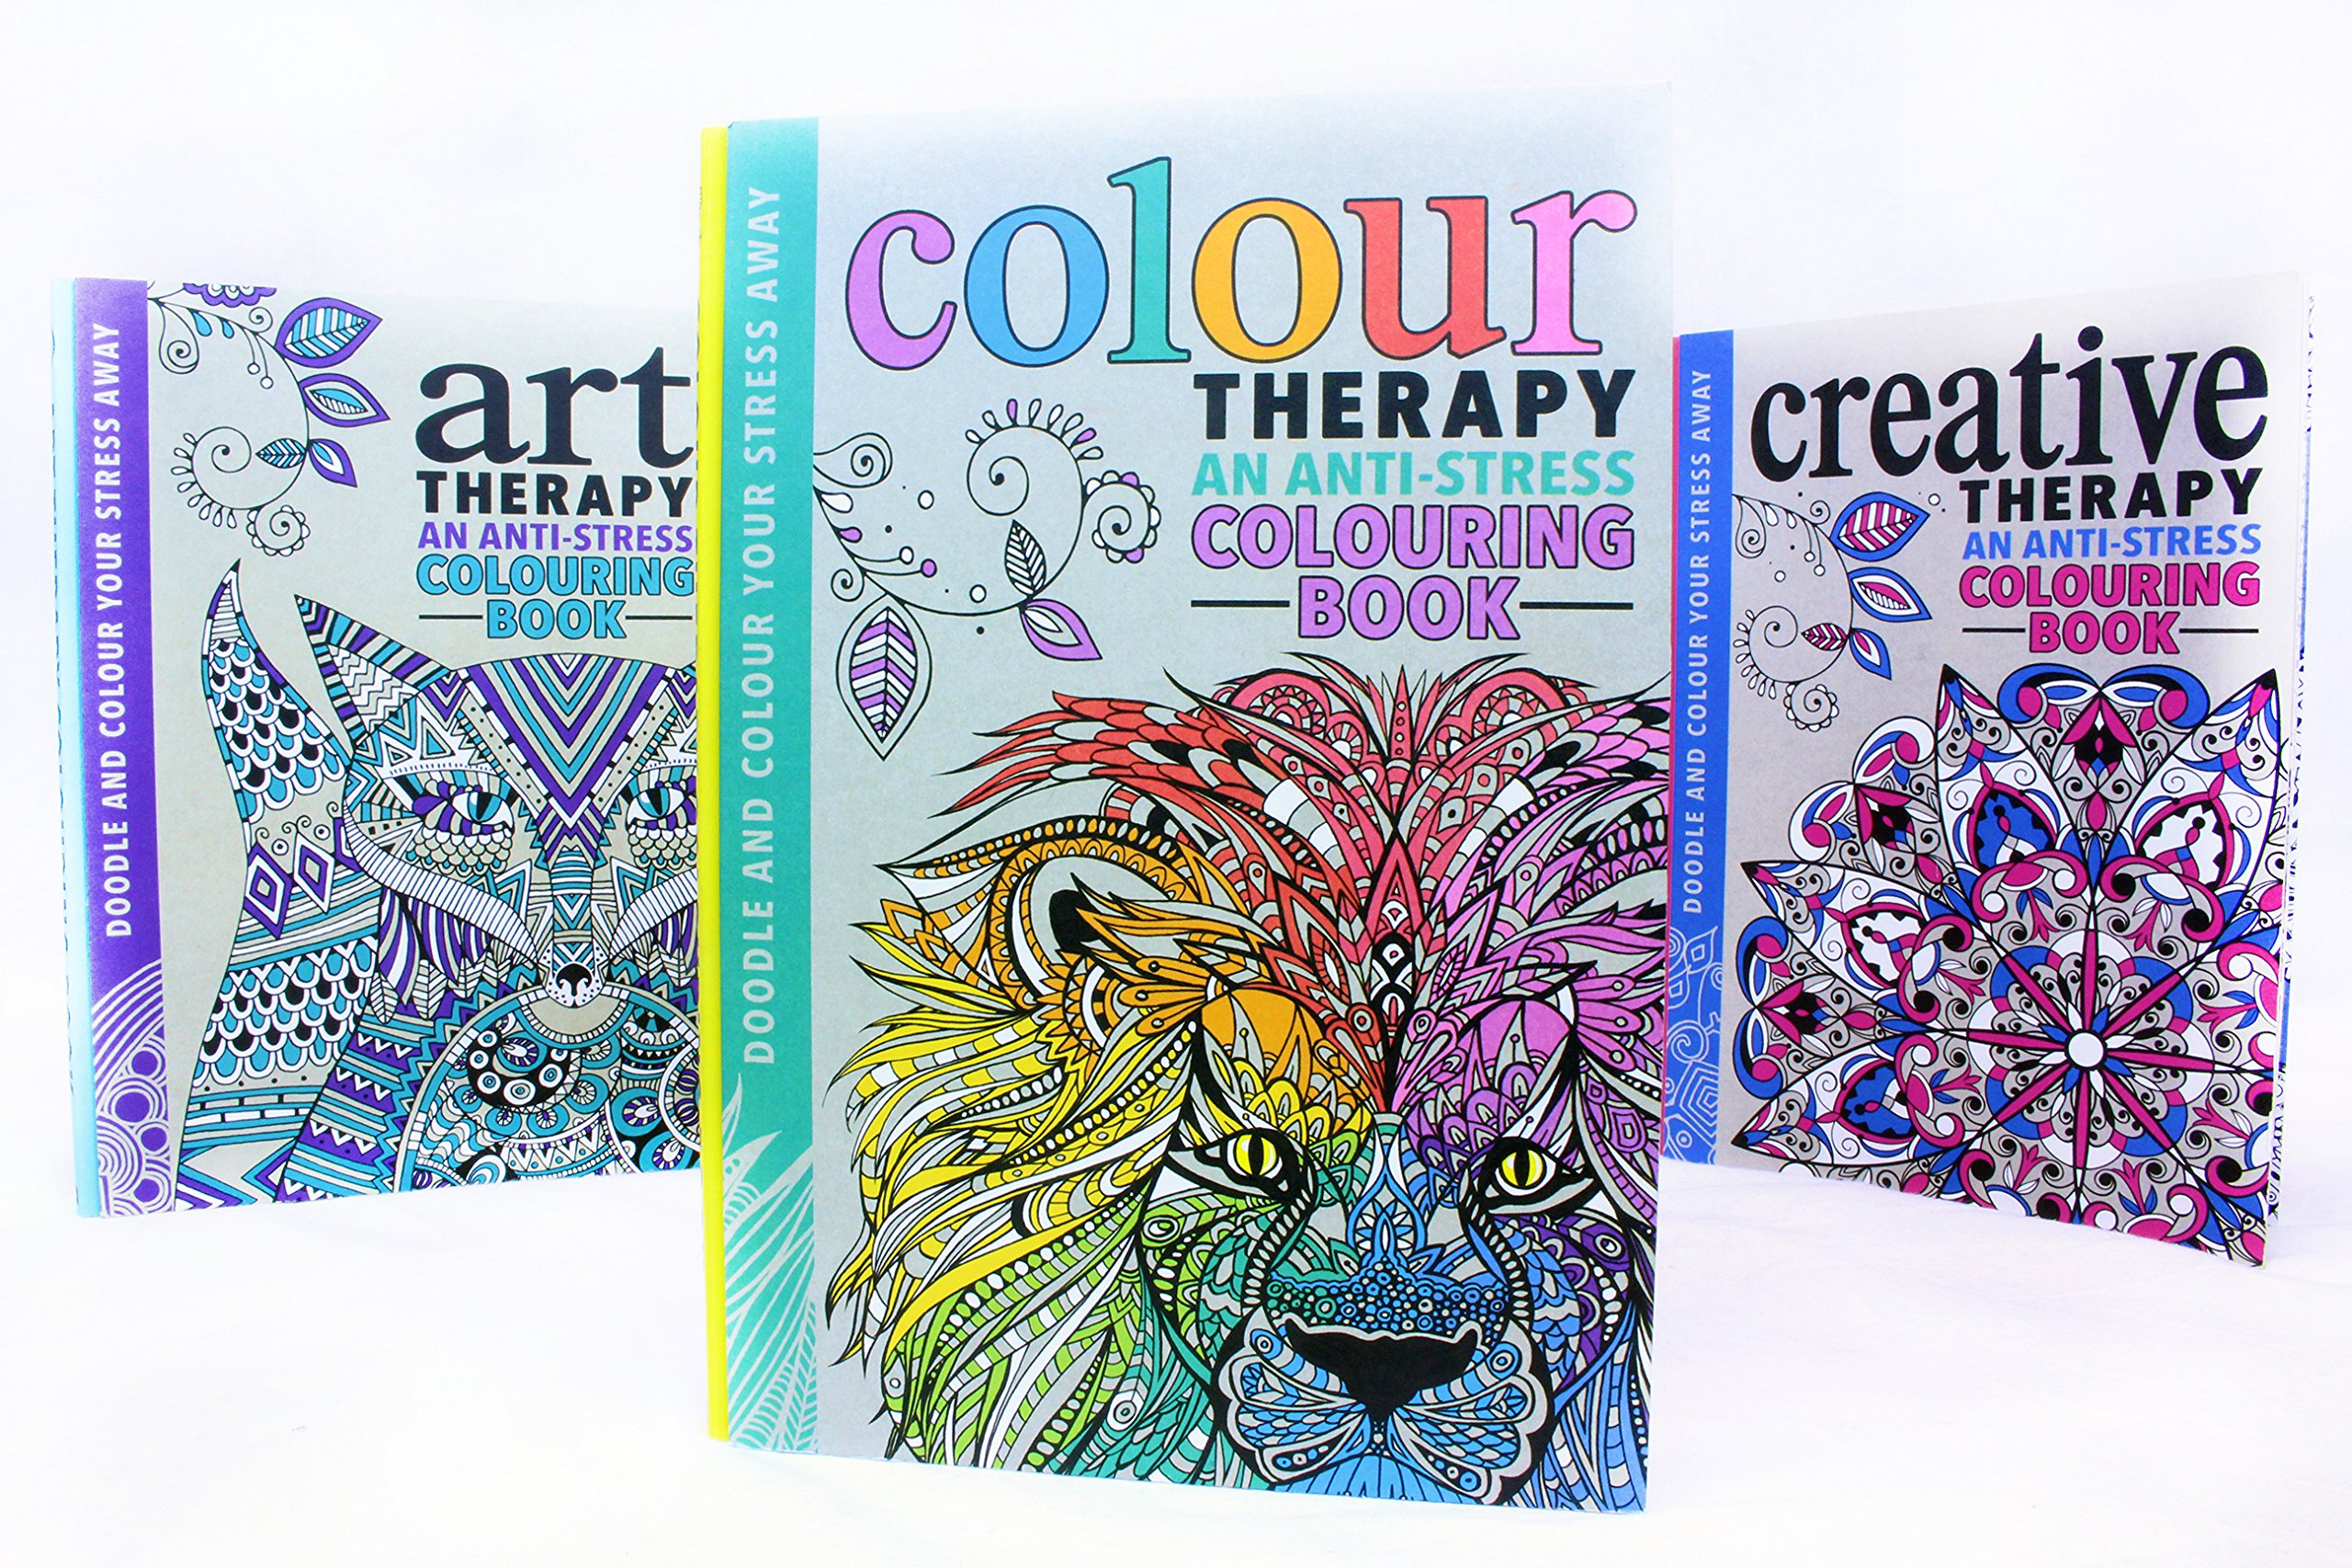 Colour therapy books for adults - Colour Therapy Books For Adults The Art Colour Creative Therapy Anti Stress Adult Colouring Books